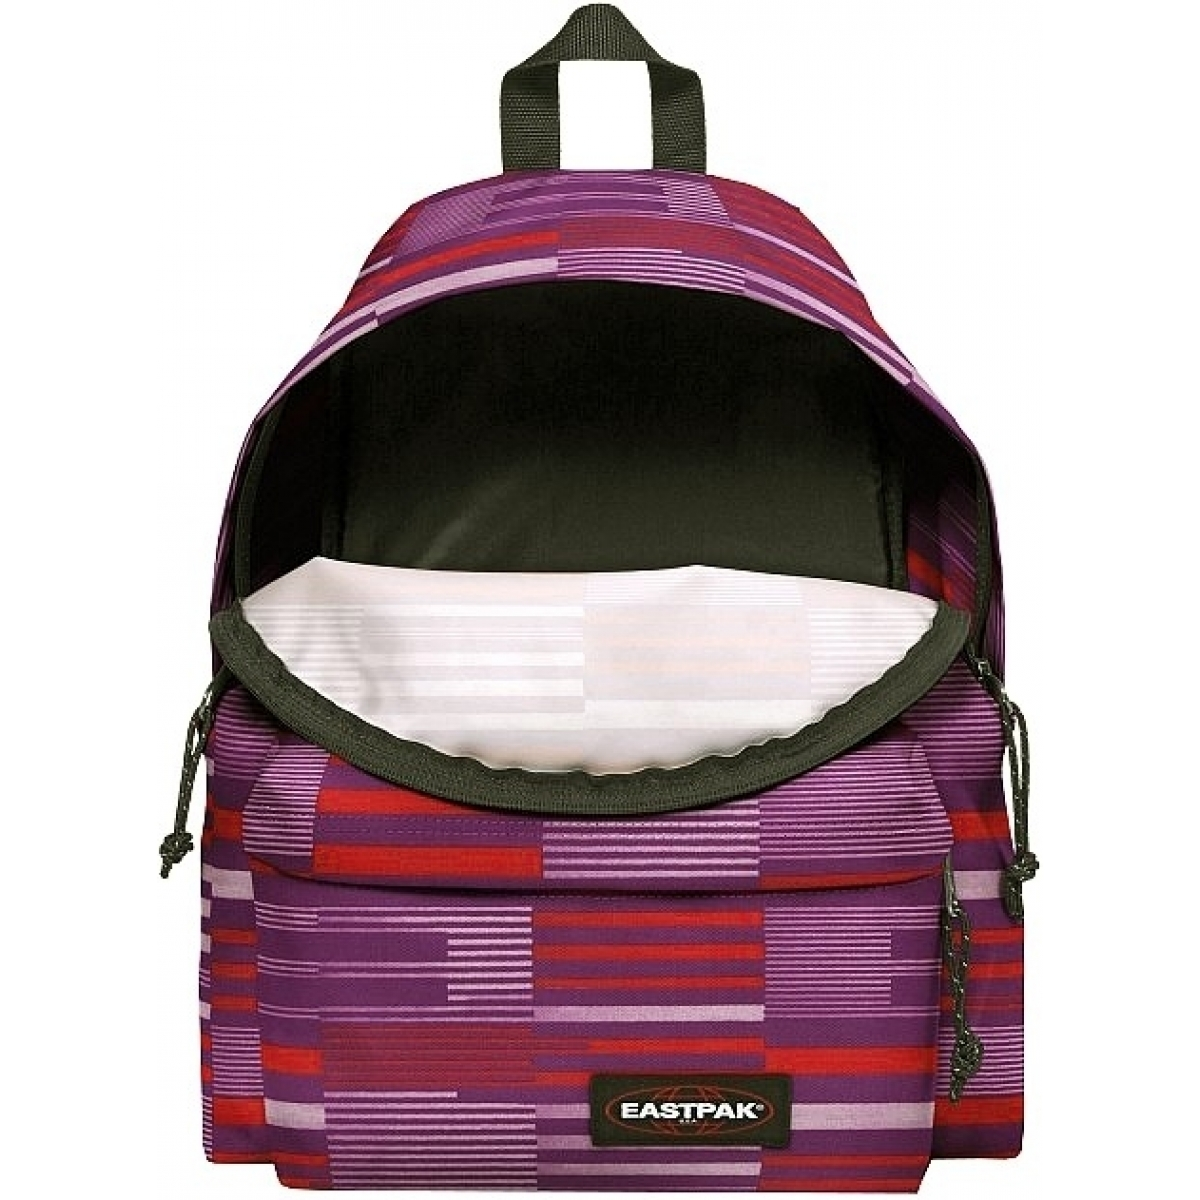 sac dos scolaire eastpak ek620 startan pink ek62034t couleur principale assortis. Black Bedroom Furniture Sets. Home Design Ideas